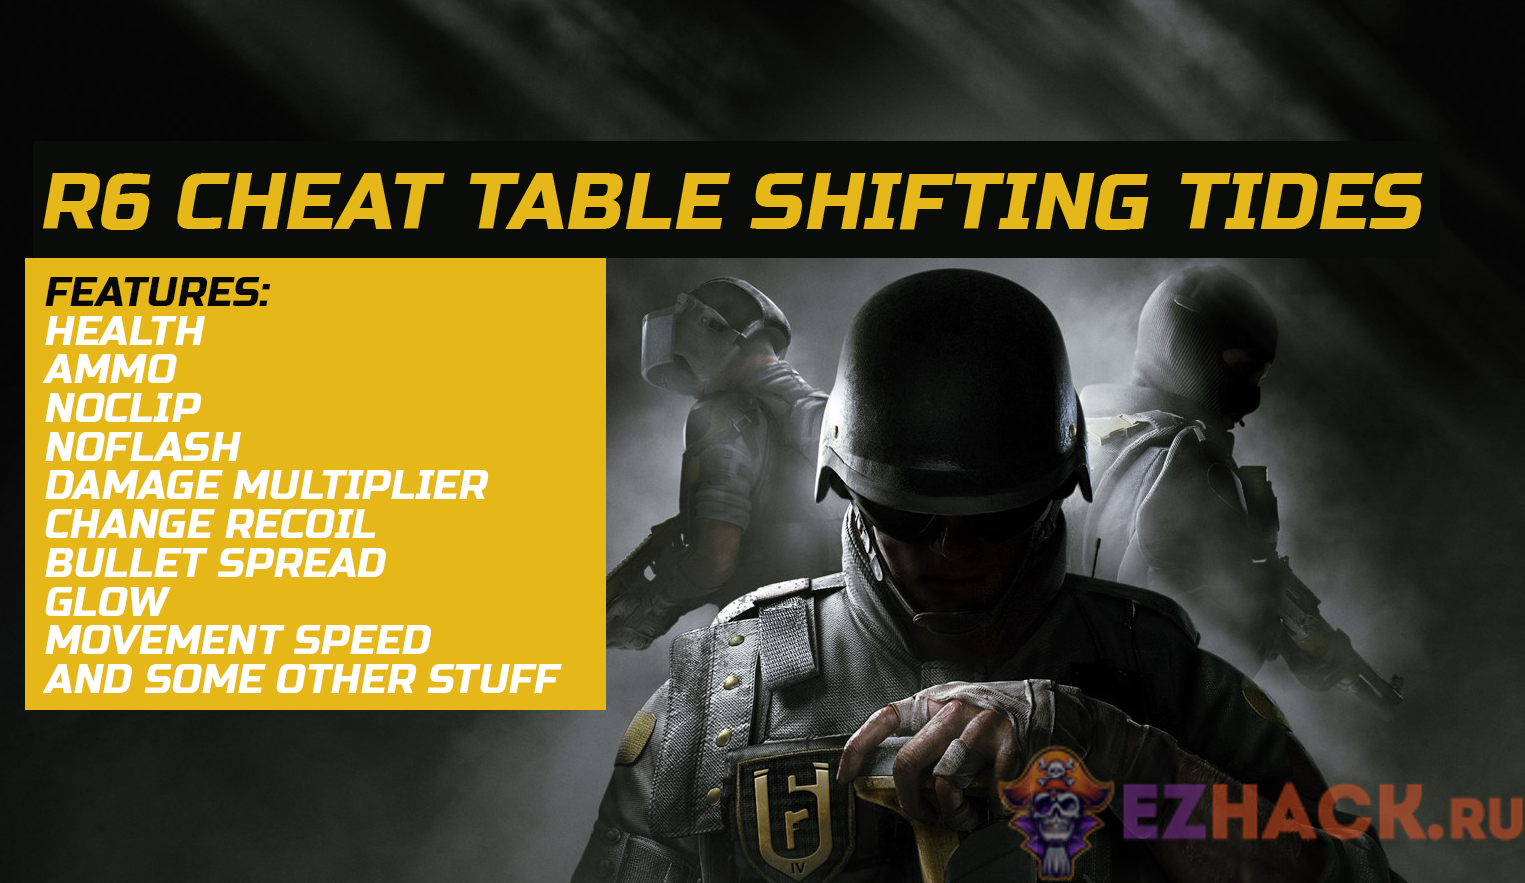 R6 Cheat Table Shifting Tides